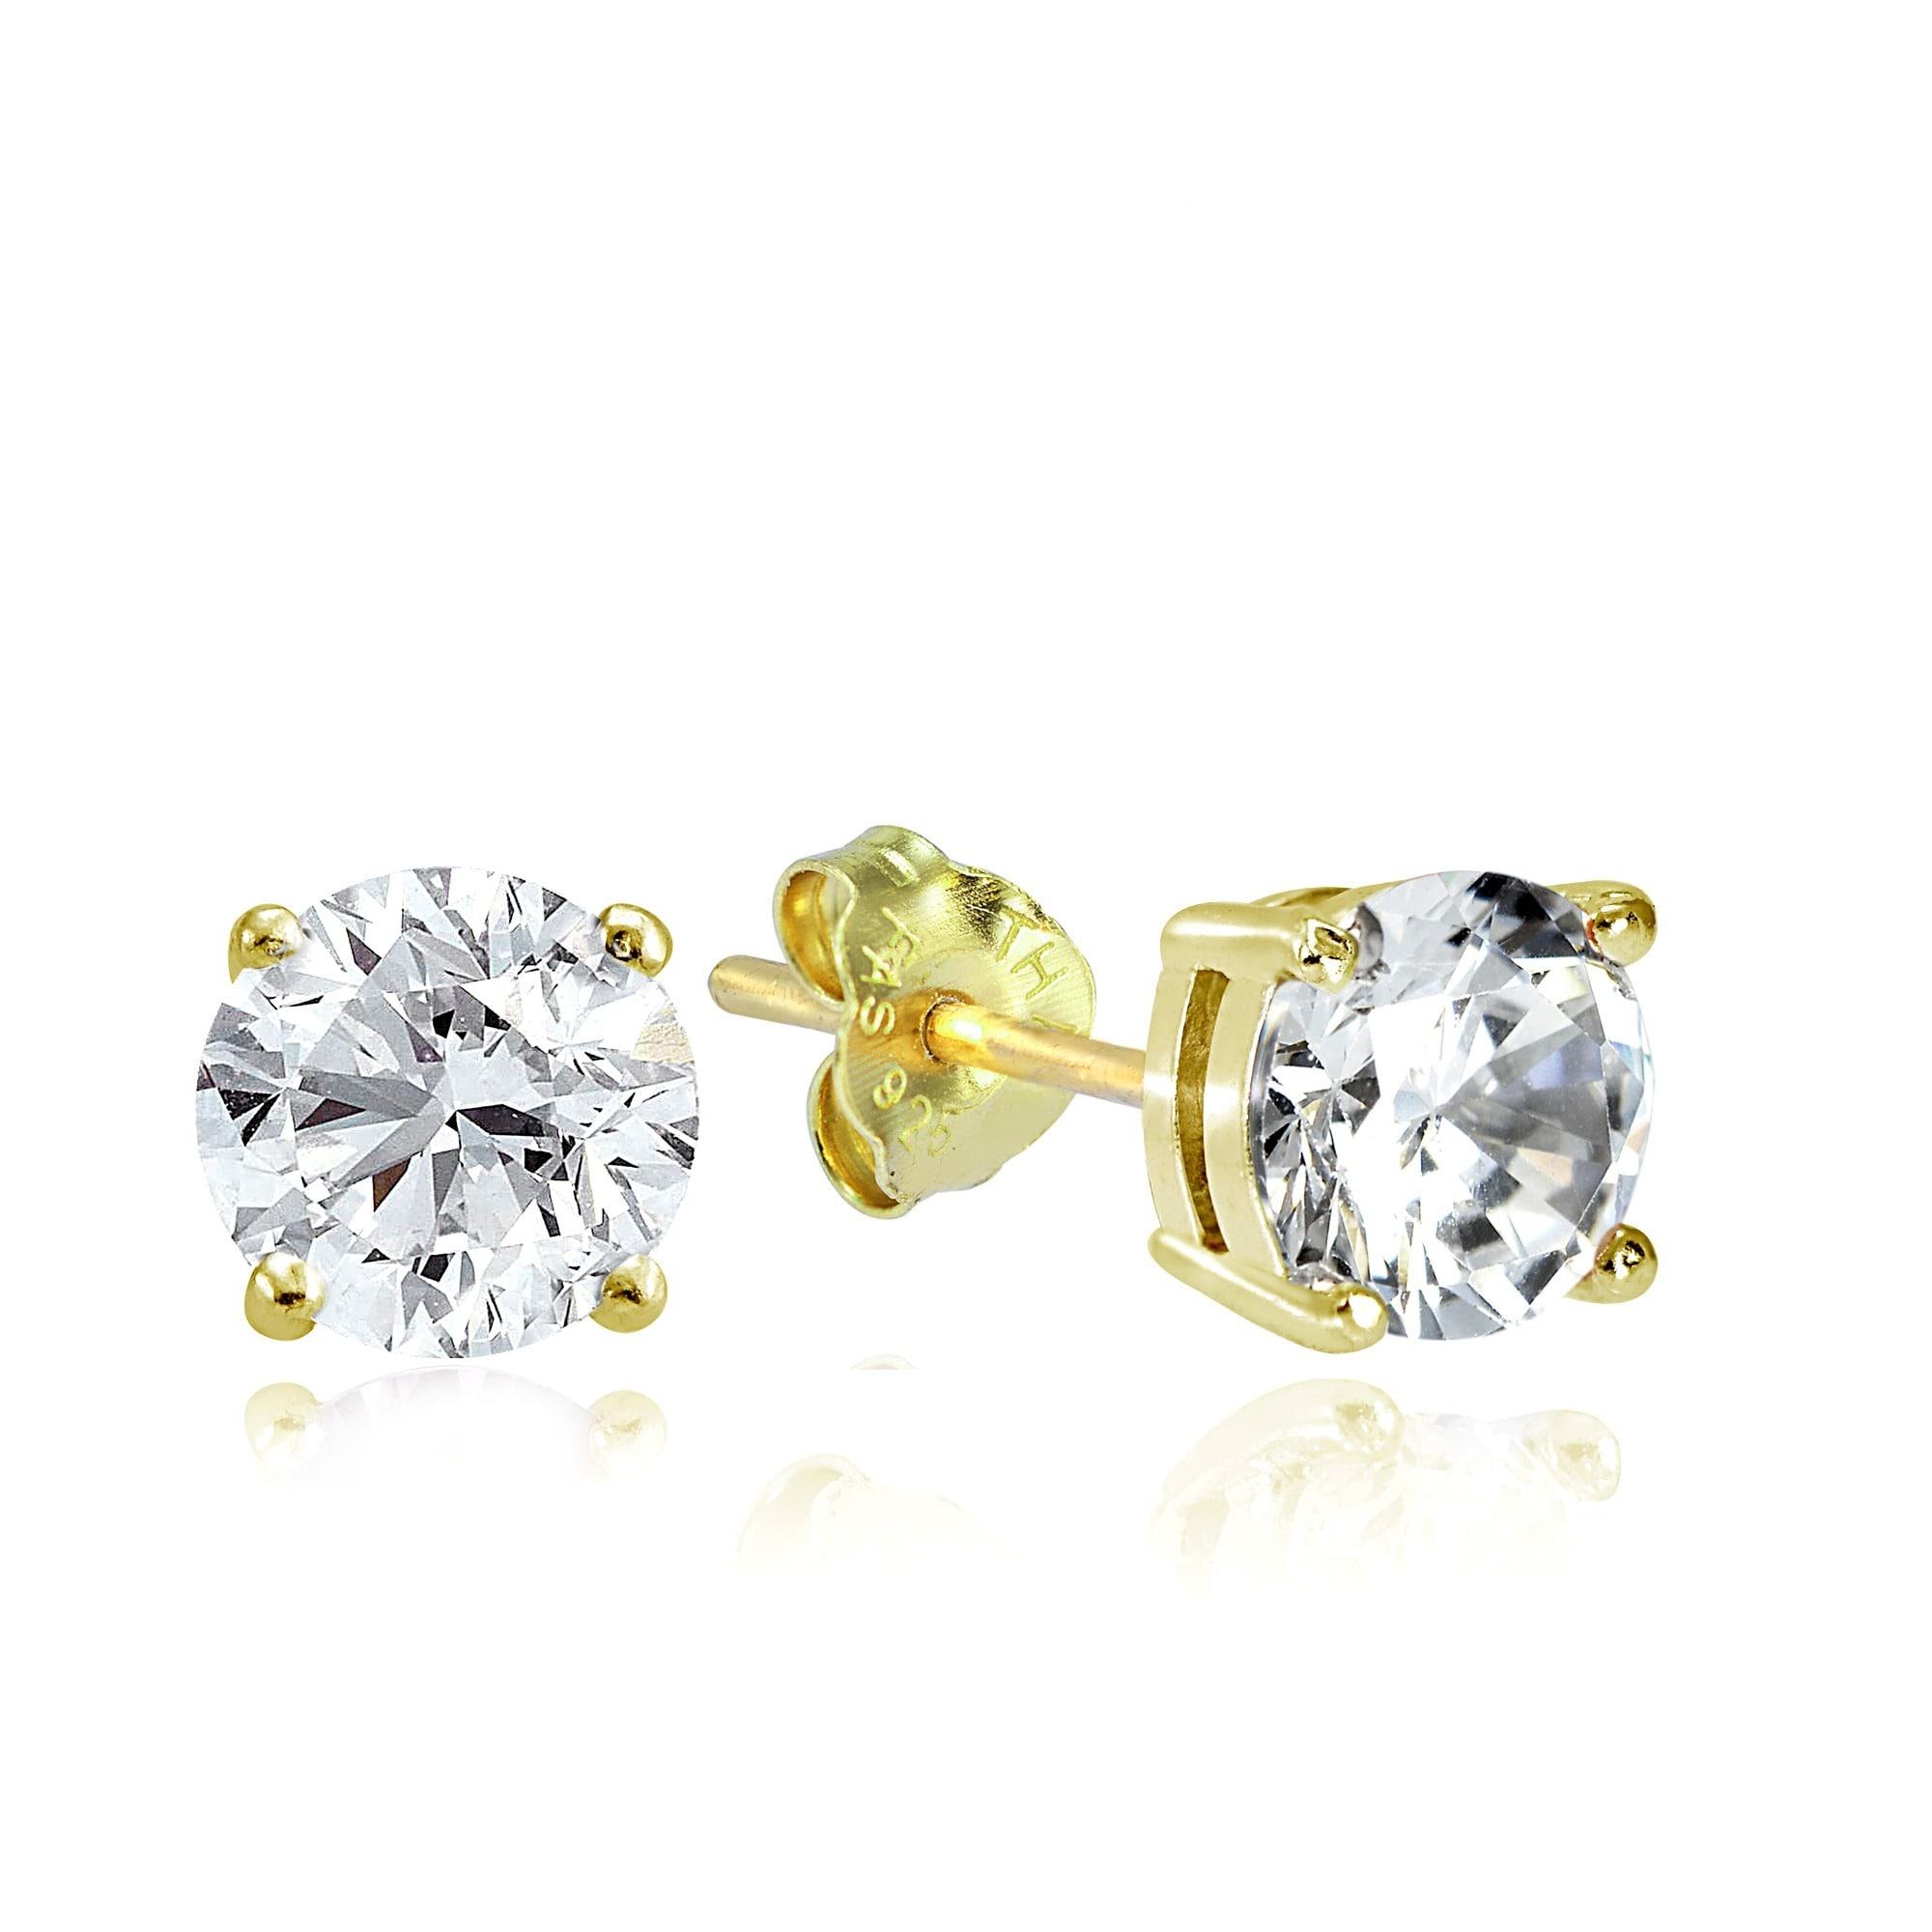 studs cut men s diamond round yellow ladies white ear earrings gold leverback real solitaire